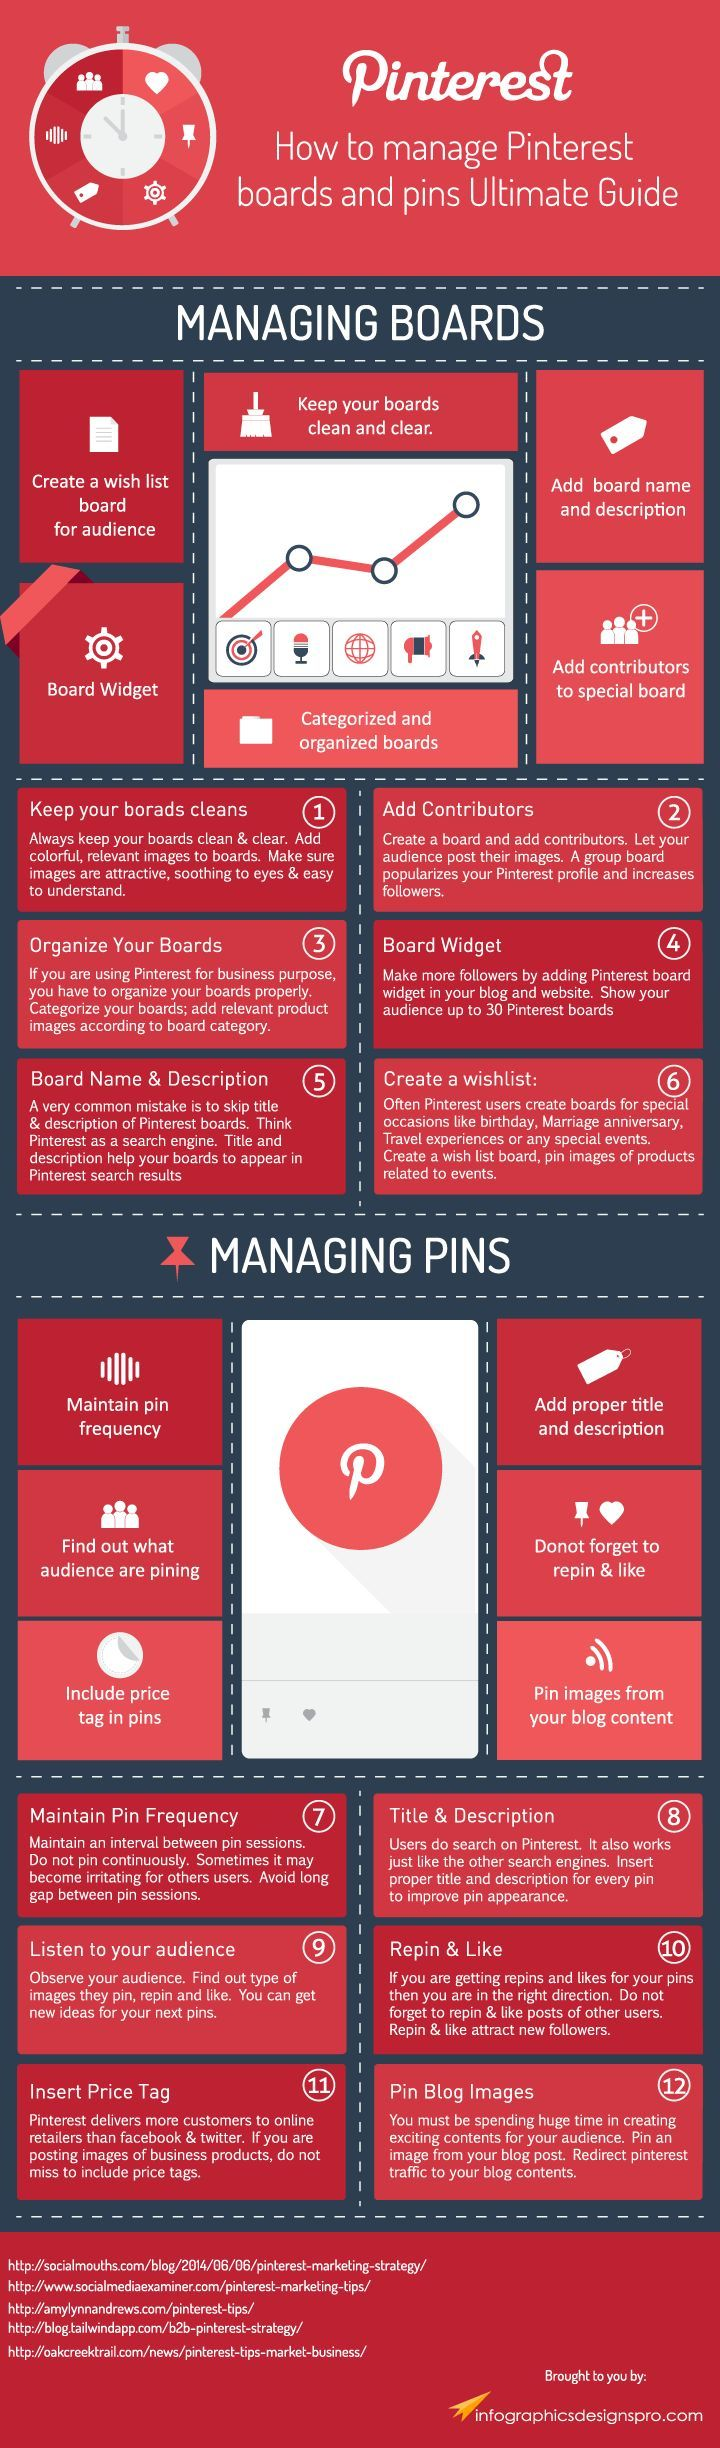 Here's some information on managing #Pinterest boards and pins #socialmedia